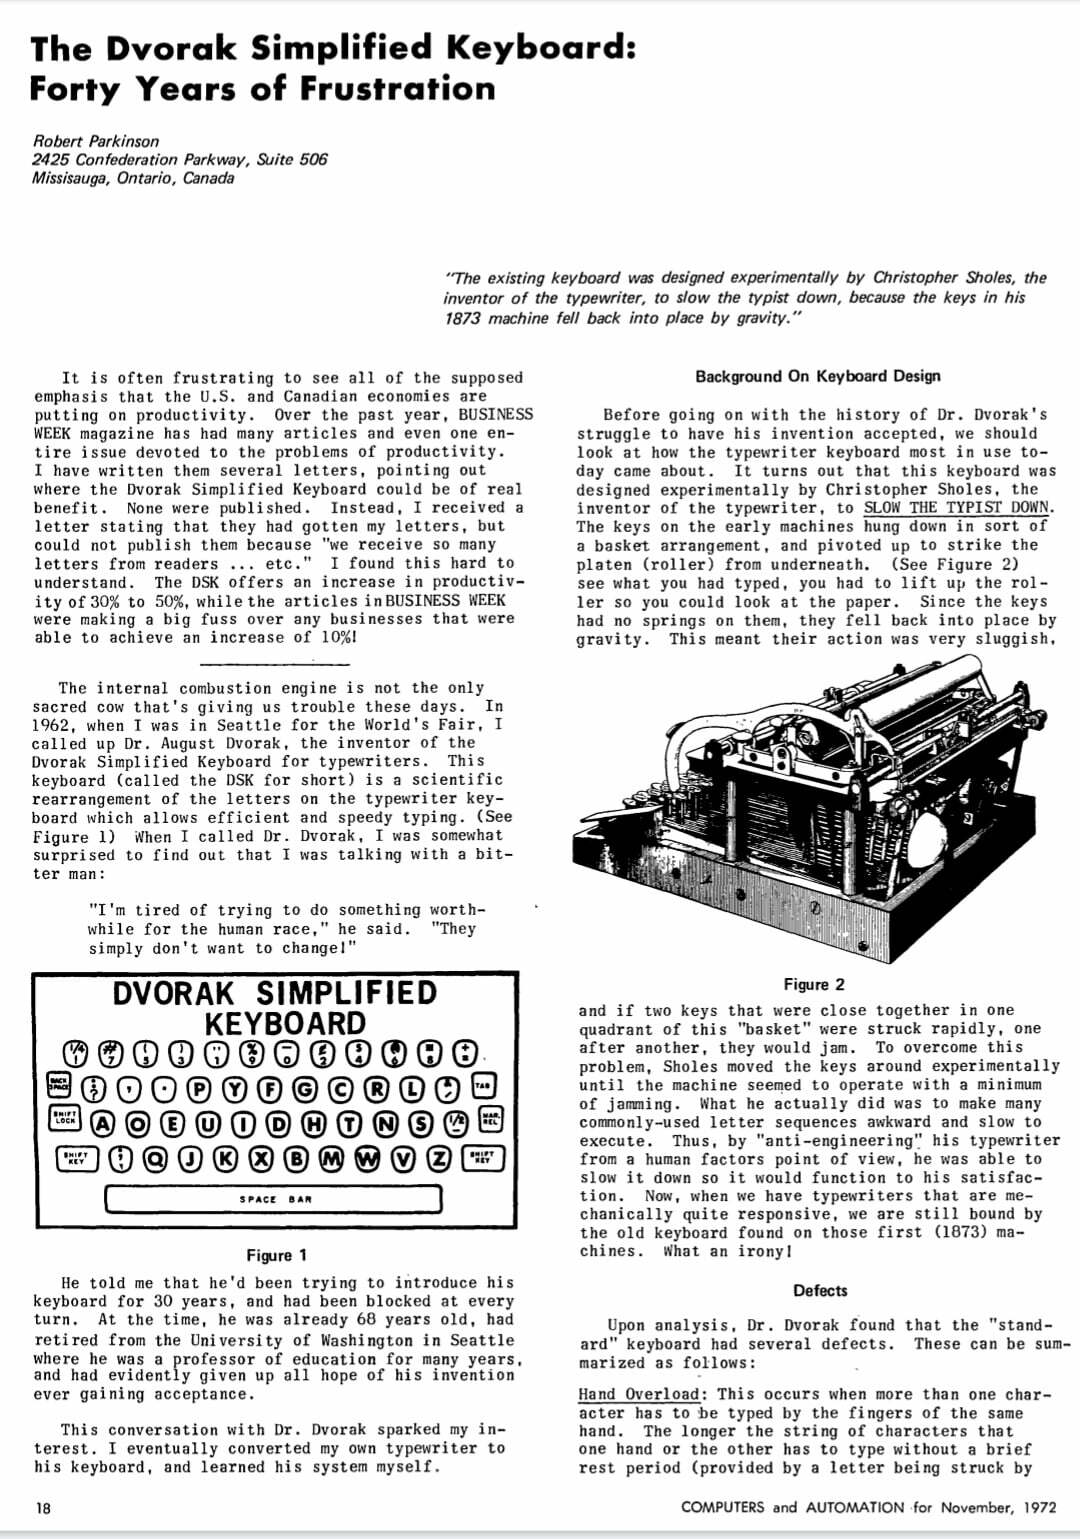 """I called up Dr. August Dvorak, the inventor of the Dvorak Simplified Keyboard for typewriters. This keyboard (called the DSK for short) is a scientific rearrangement of the letters on the typewriter key- board which allows efficient and speedy typing. (See Figure 1) When I called Dr. Dvorak, I was somewhat surprised to find out that I was talking with a bit- ter man : """"I'm tired of trying to do something worth- while for the human race,"""" he said. """"They simply don't want to change!"""""""